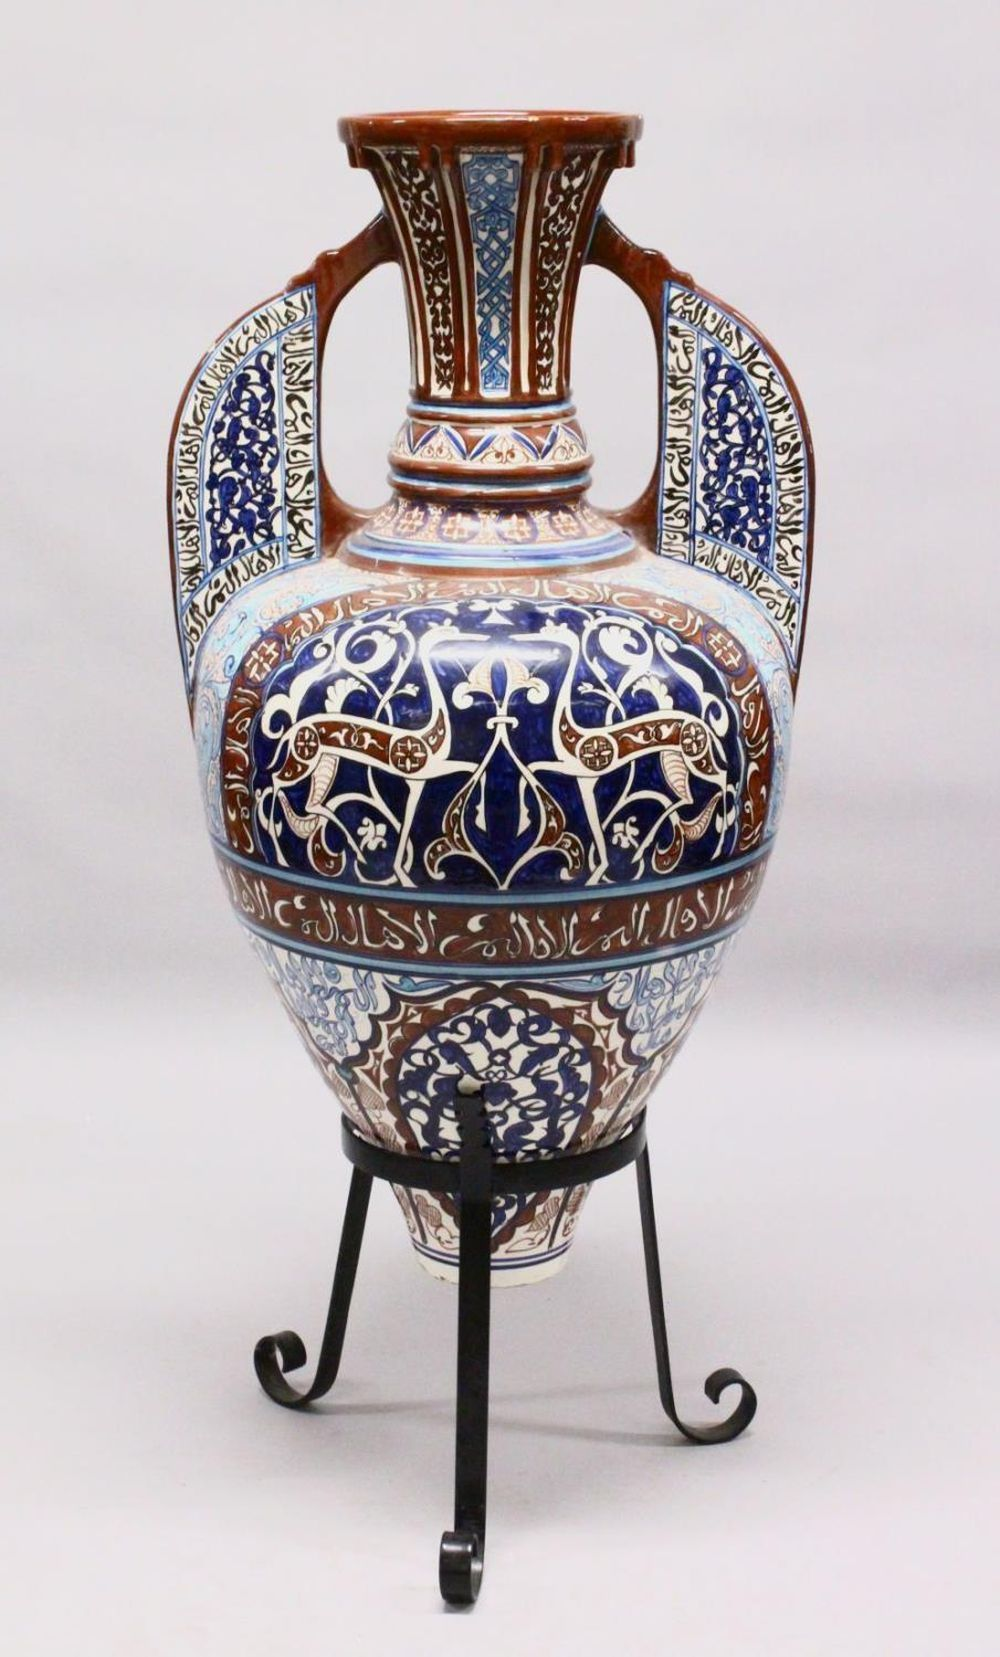 A HUGE 19TH CENTURY ISLAMIC HISPANO MORESQUE POTTERY ALHAMBRA STYLE POTTERY VASE & STAND, possibly